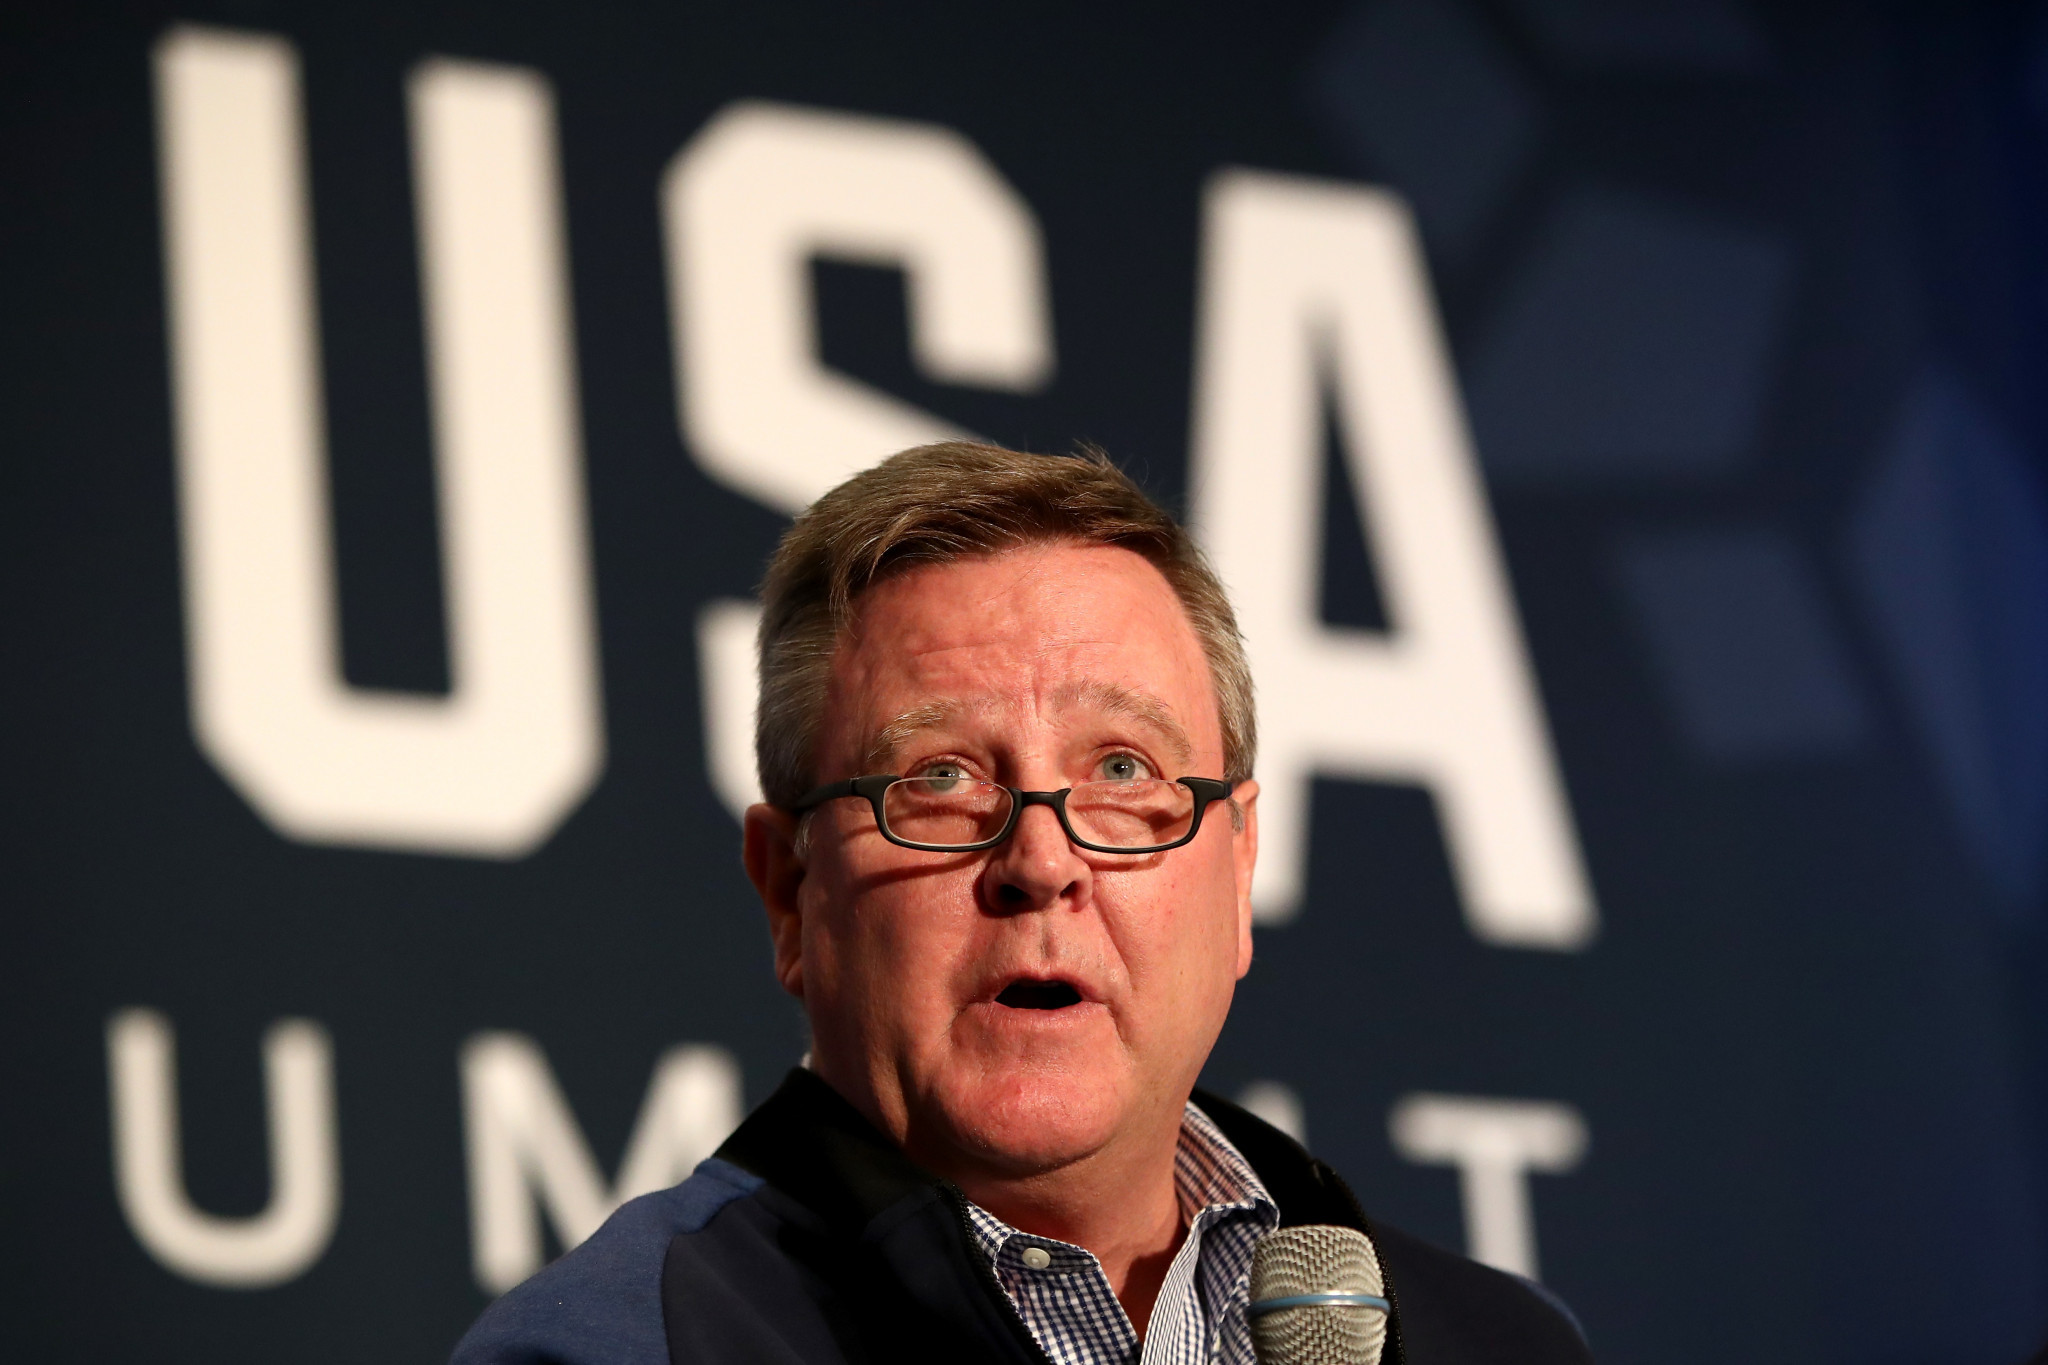 USOC chief executive Blackmun diagnosed with prostate cancer